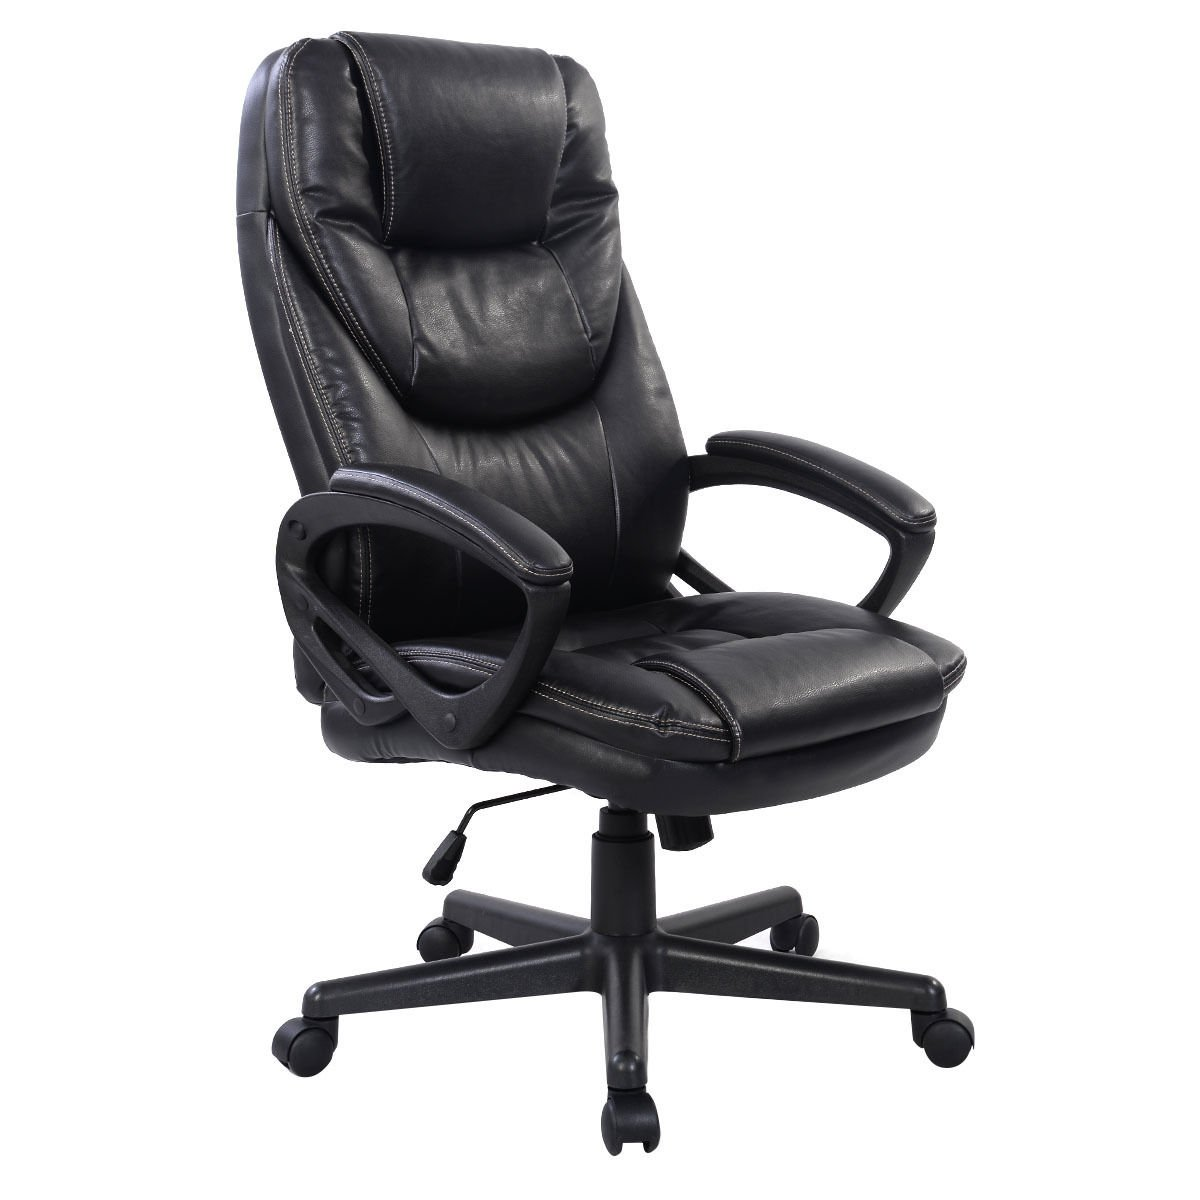 white office chair under 100 the hippest pics